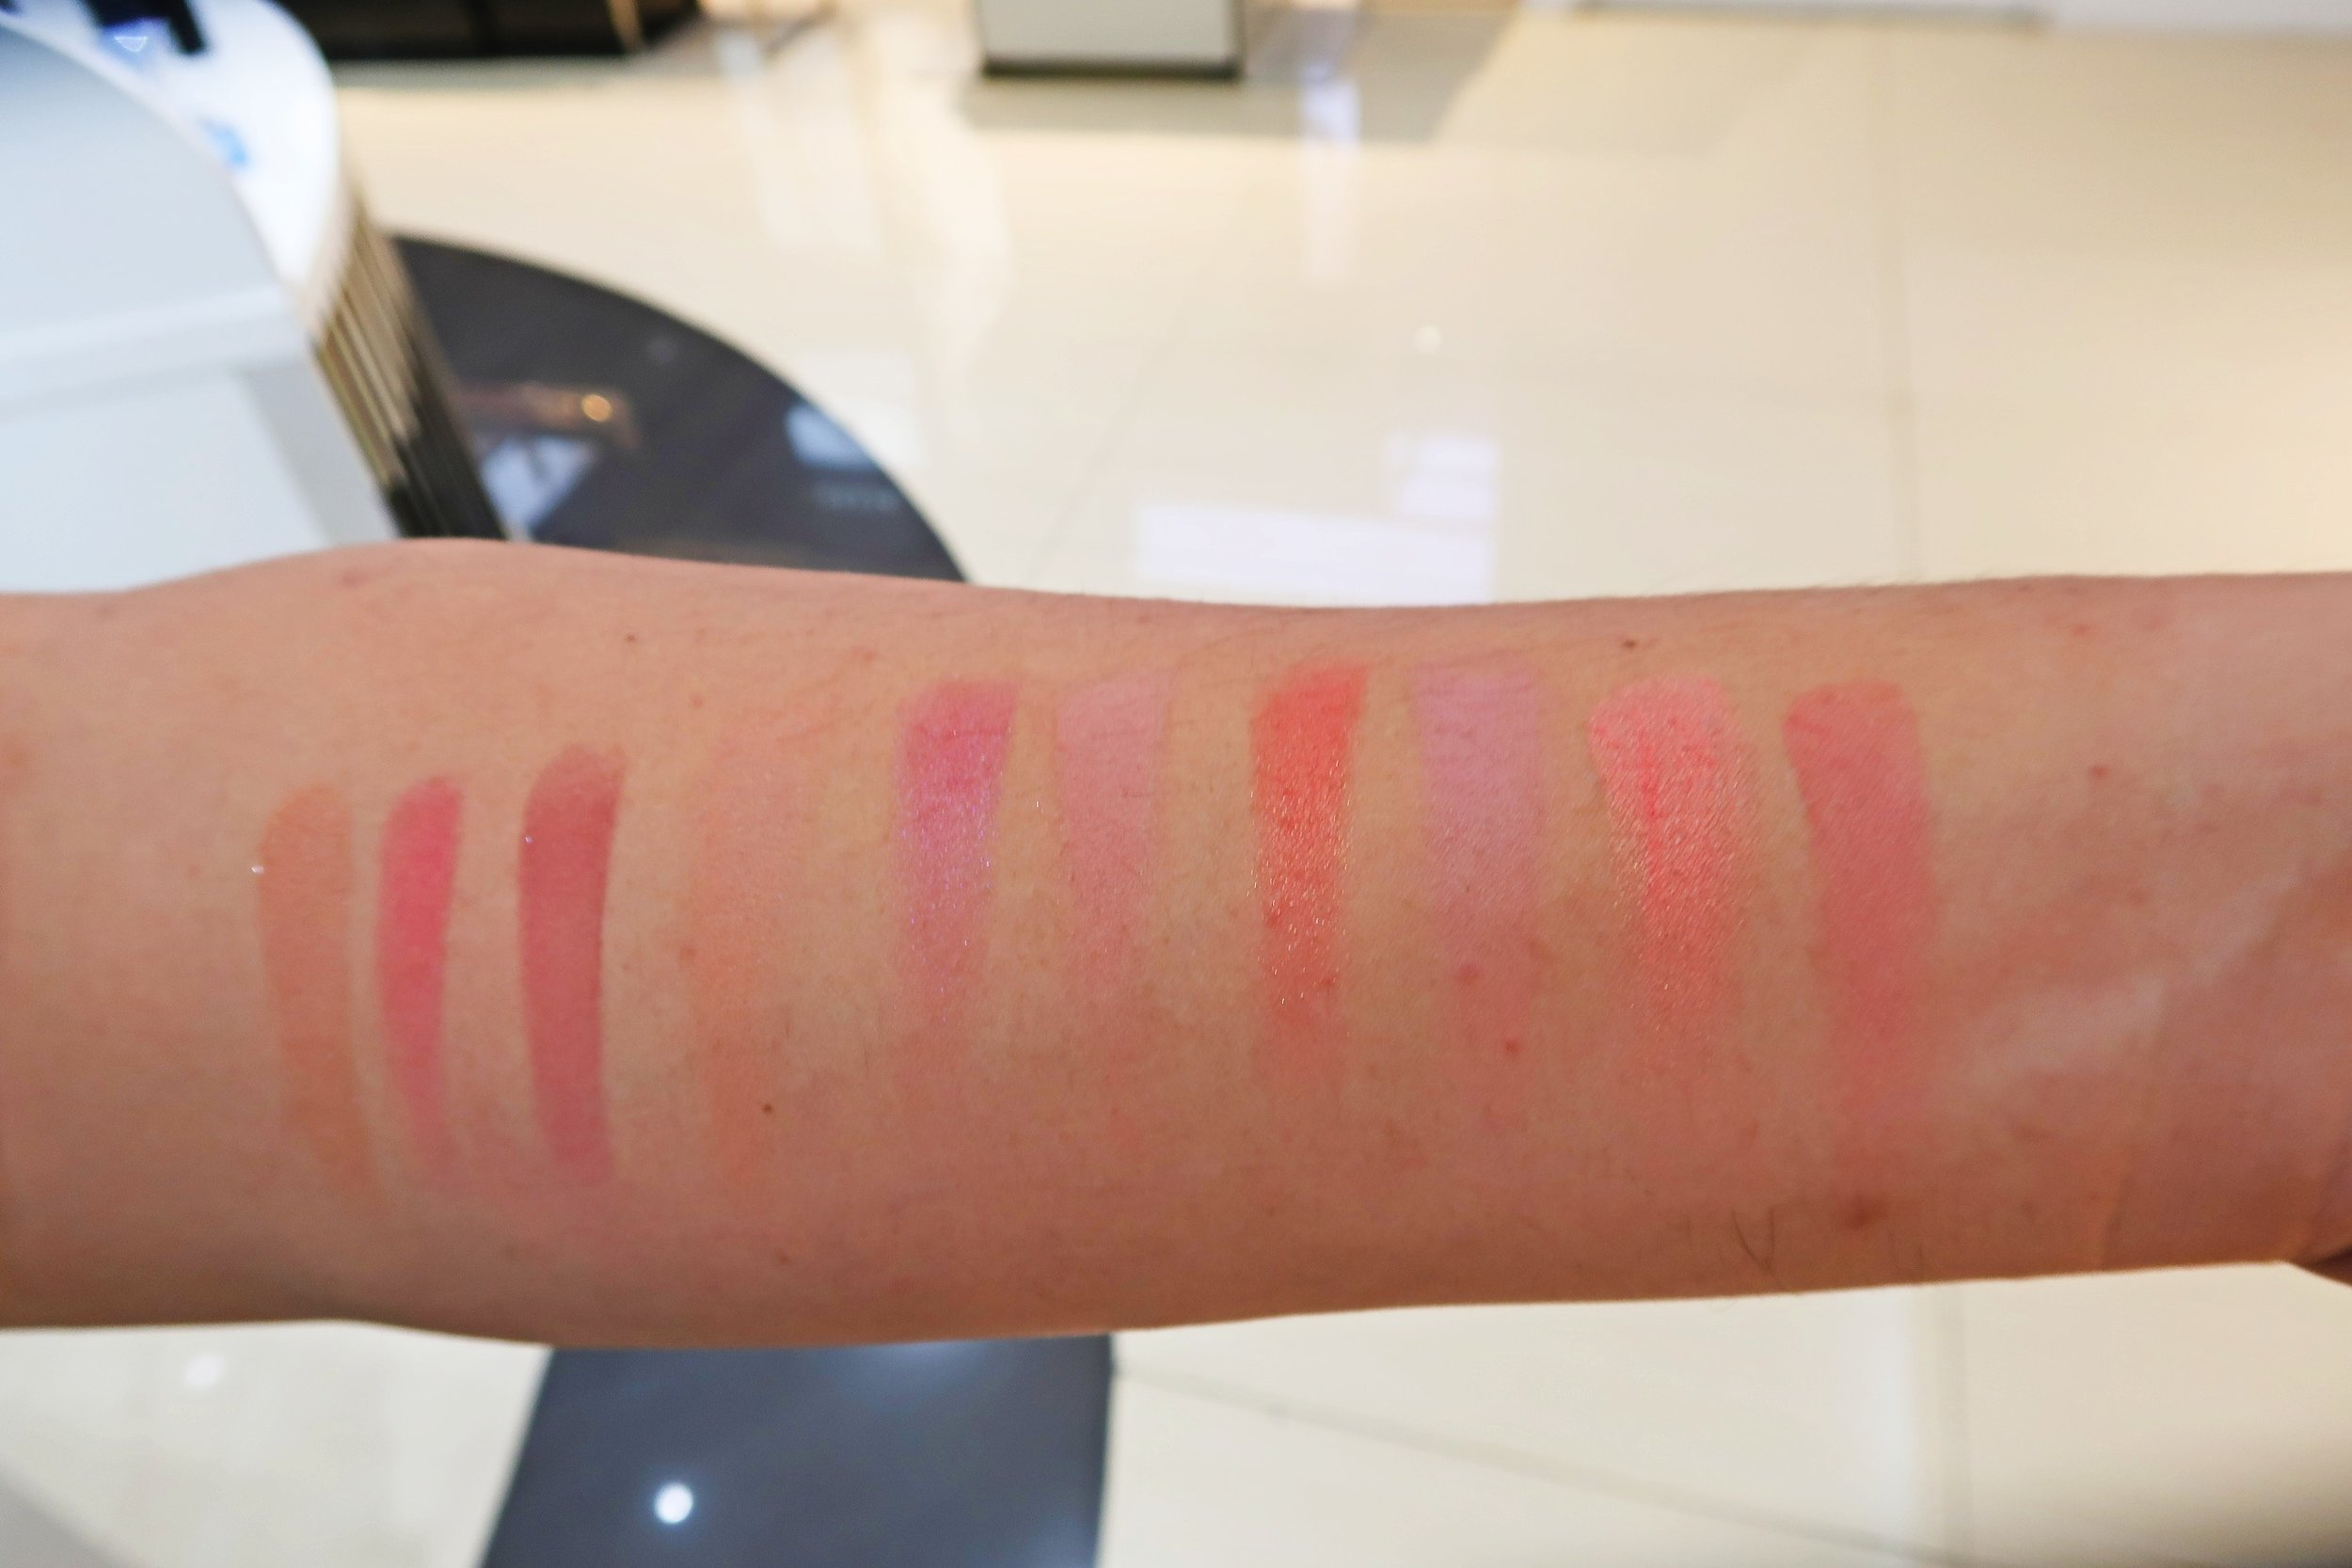 Swatches, from left: Fresco, Pomegranate, Kir Royale, Ginger, Sangria, Chai, Grapefruit, Strawberry, Peach, Rose